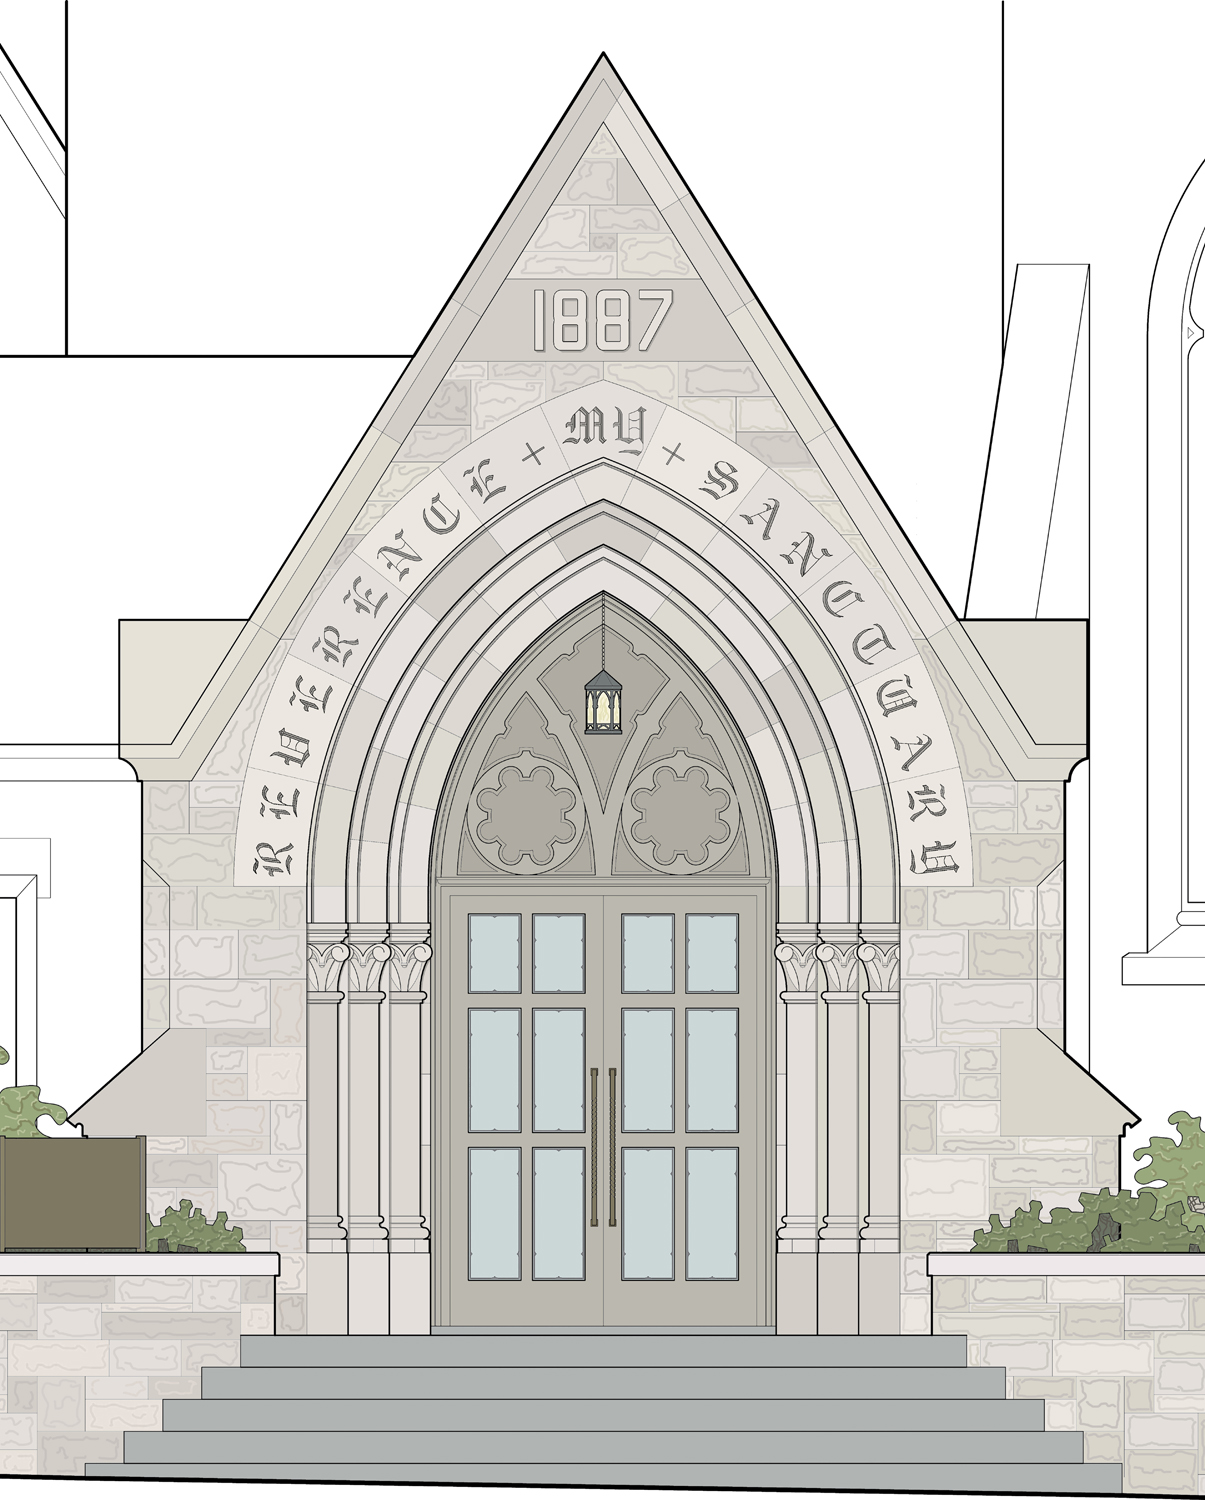 proposed church entrance design